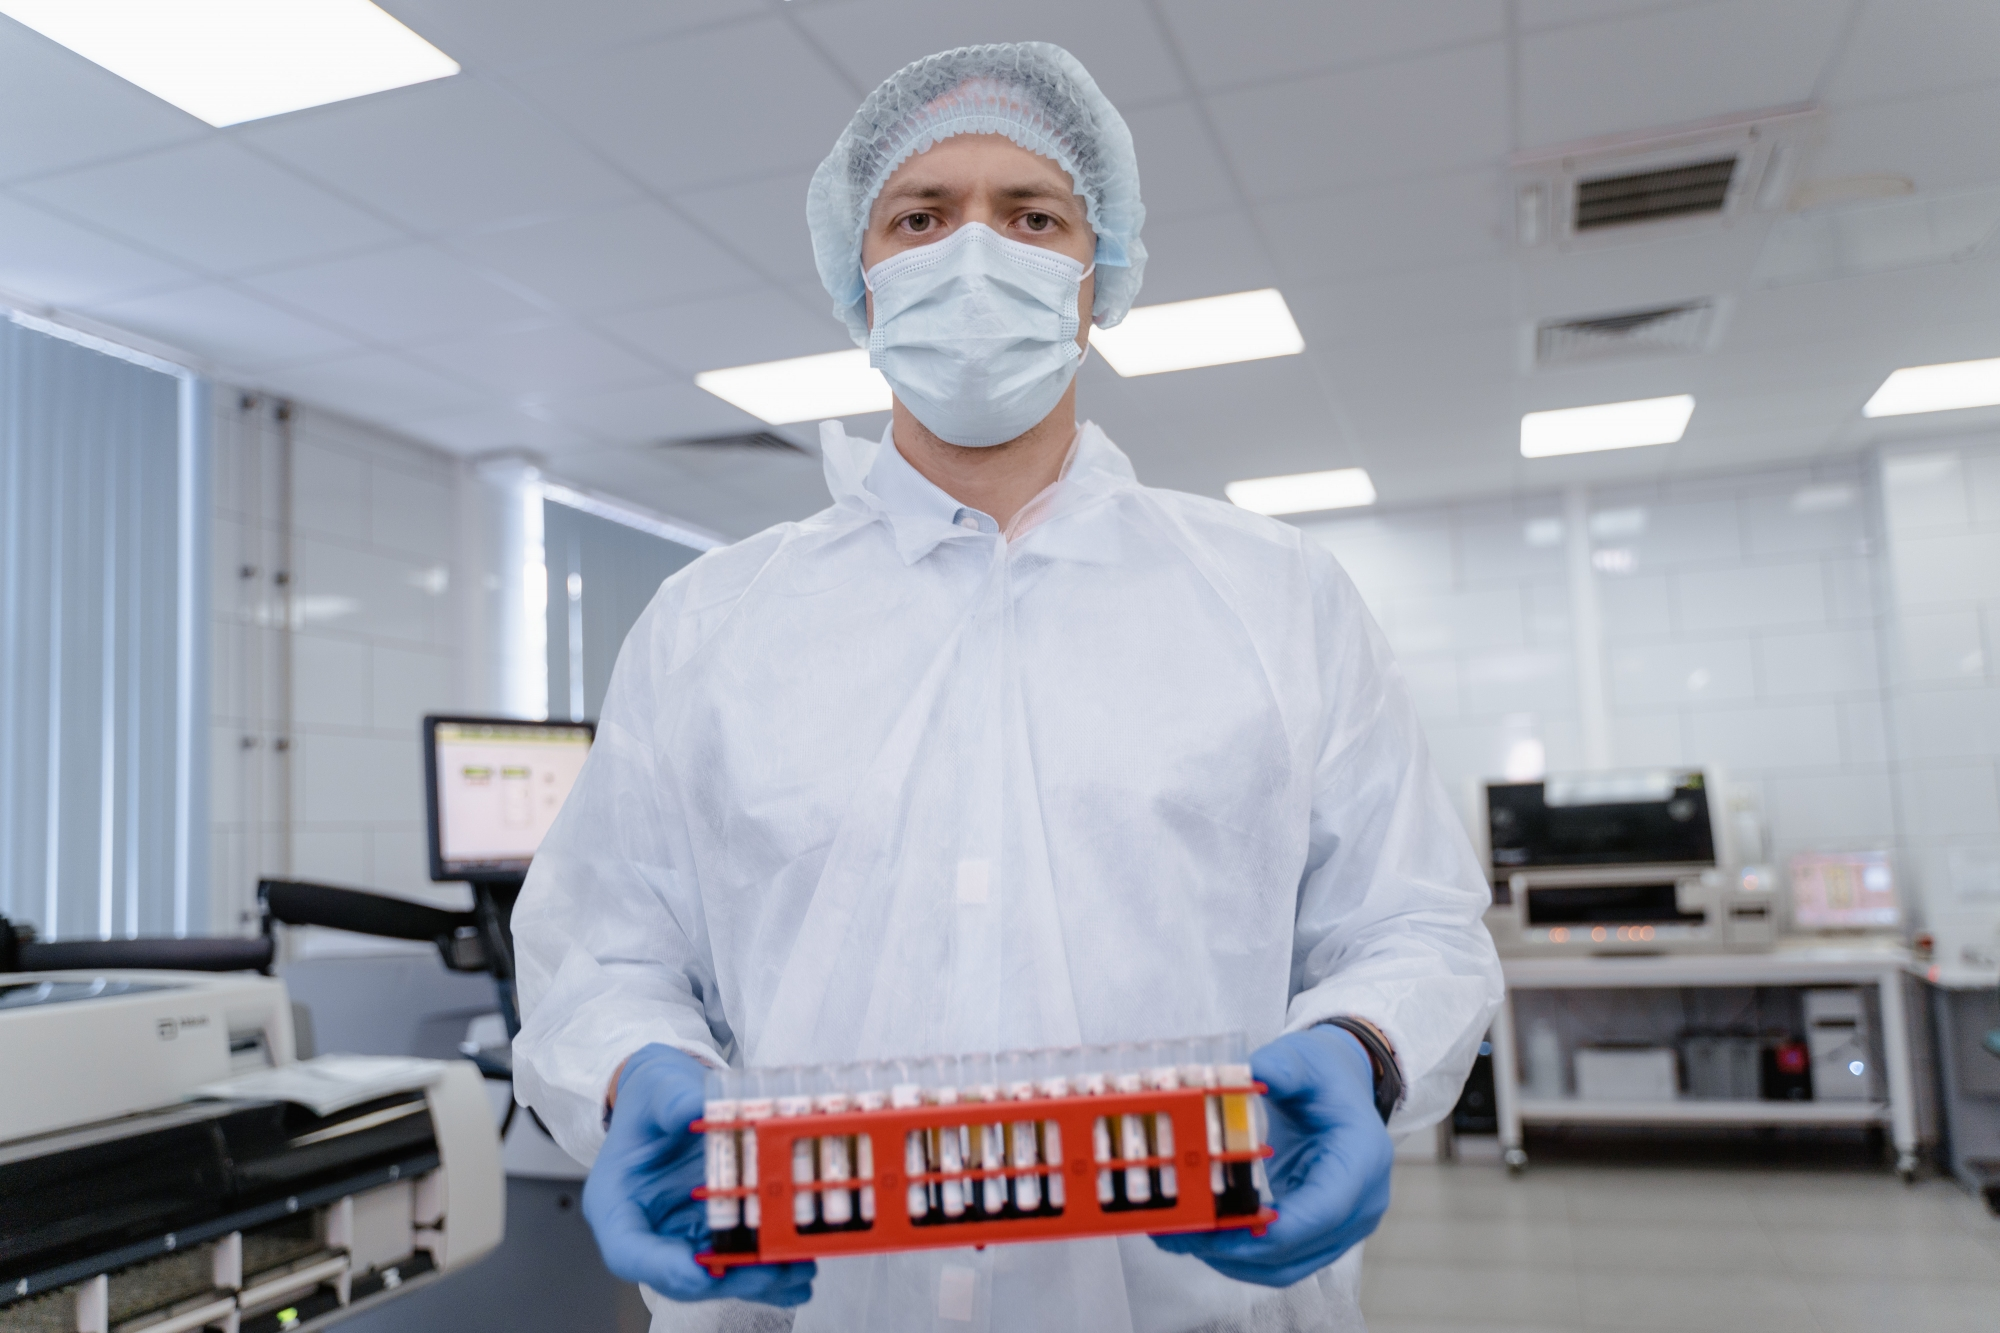 lab technician holding test tubes